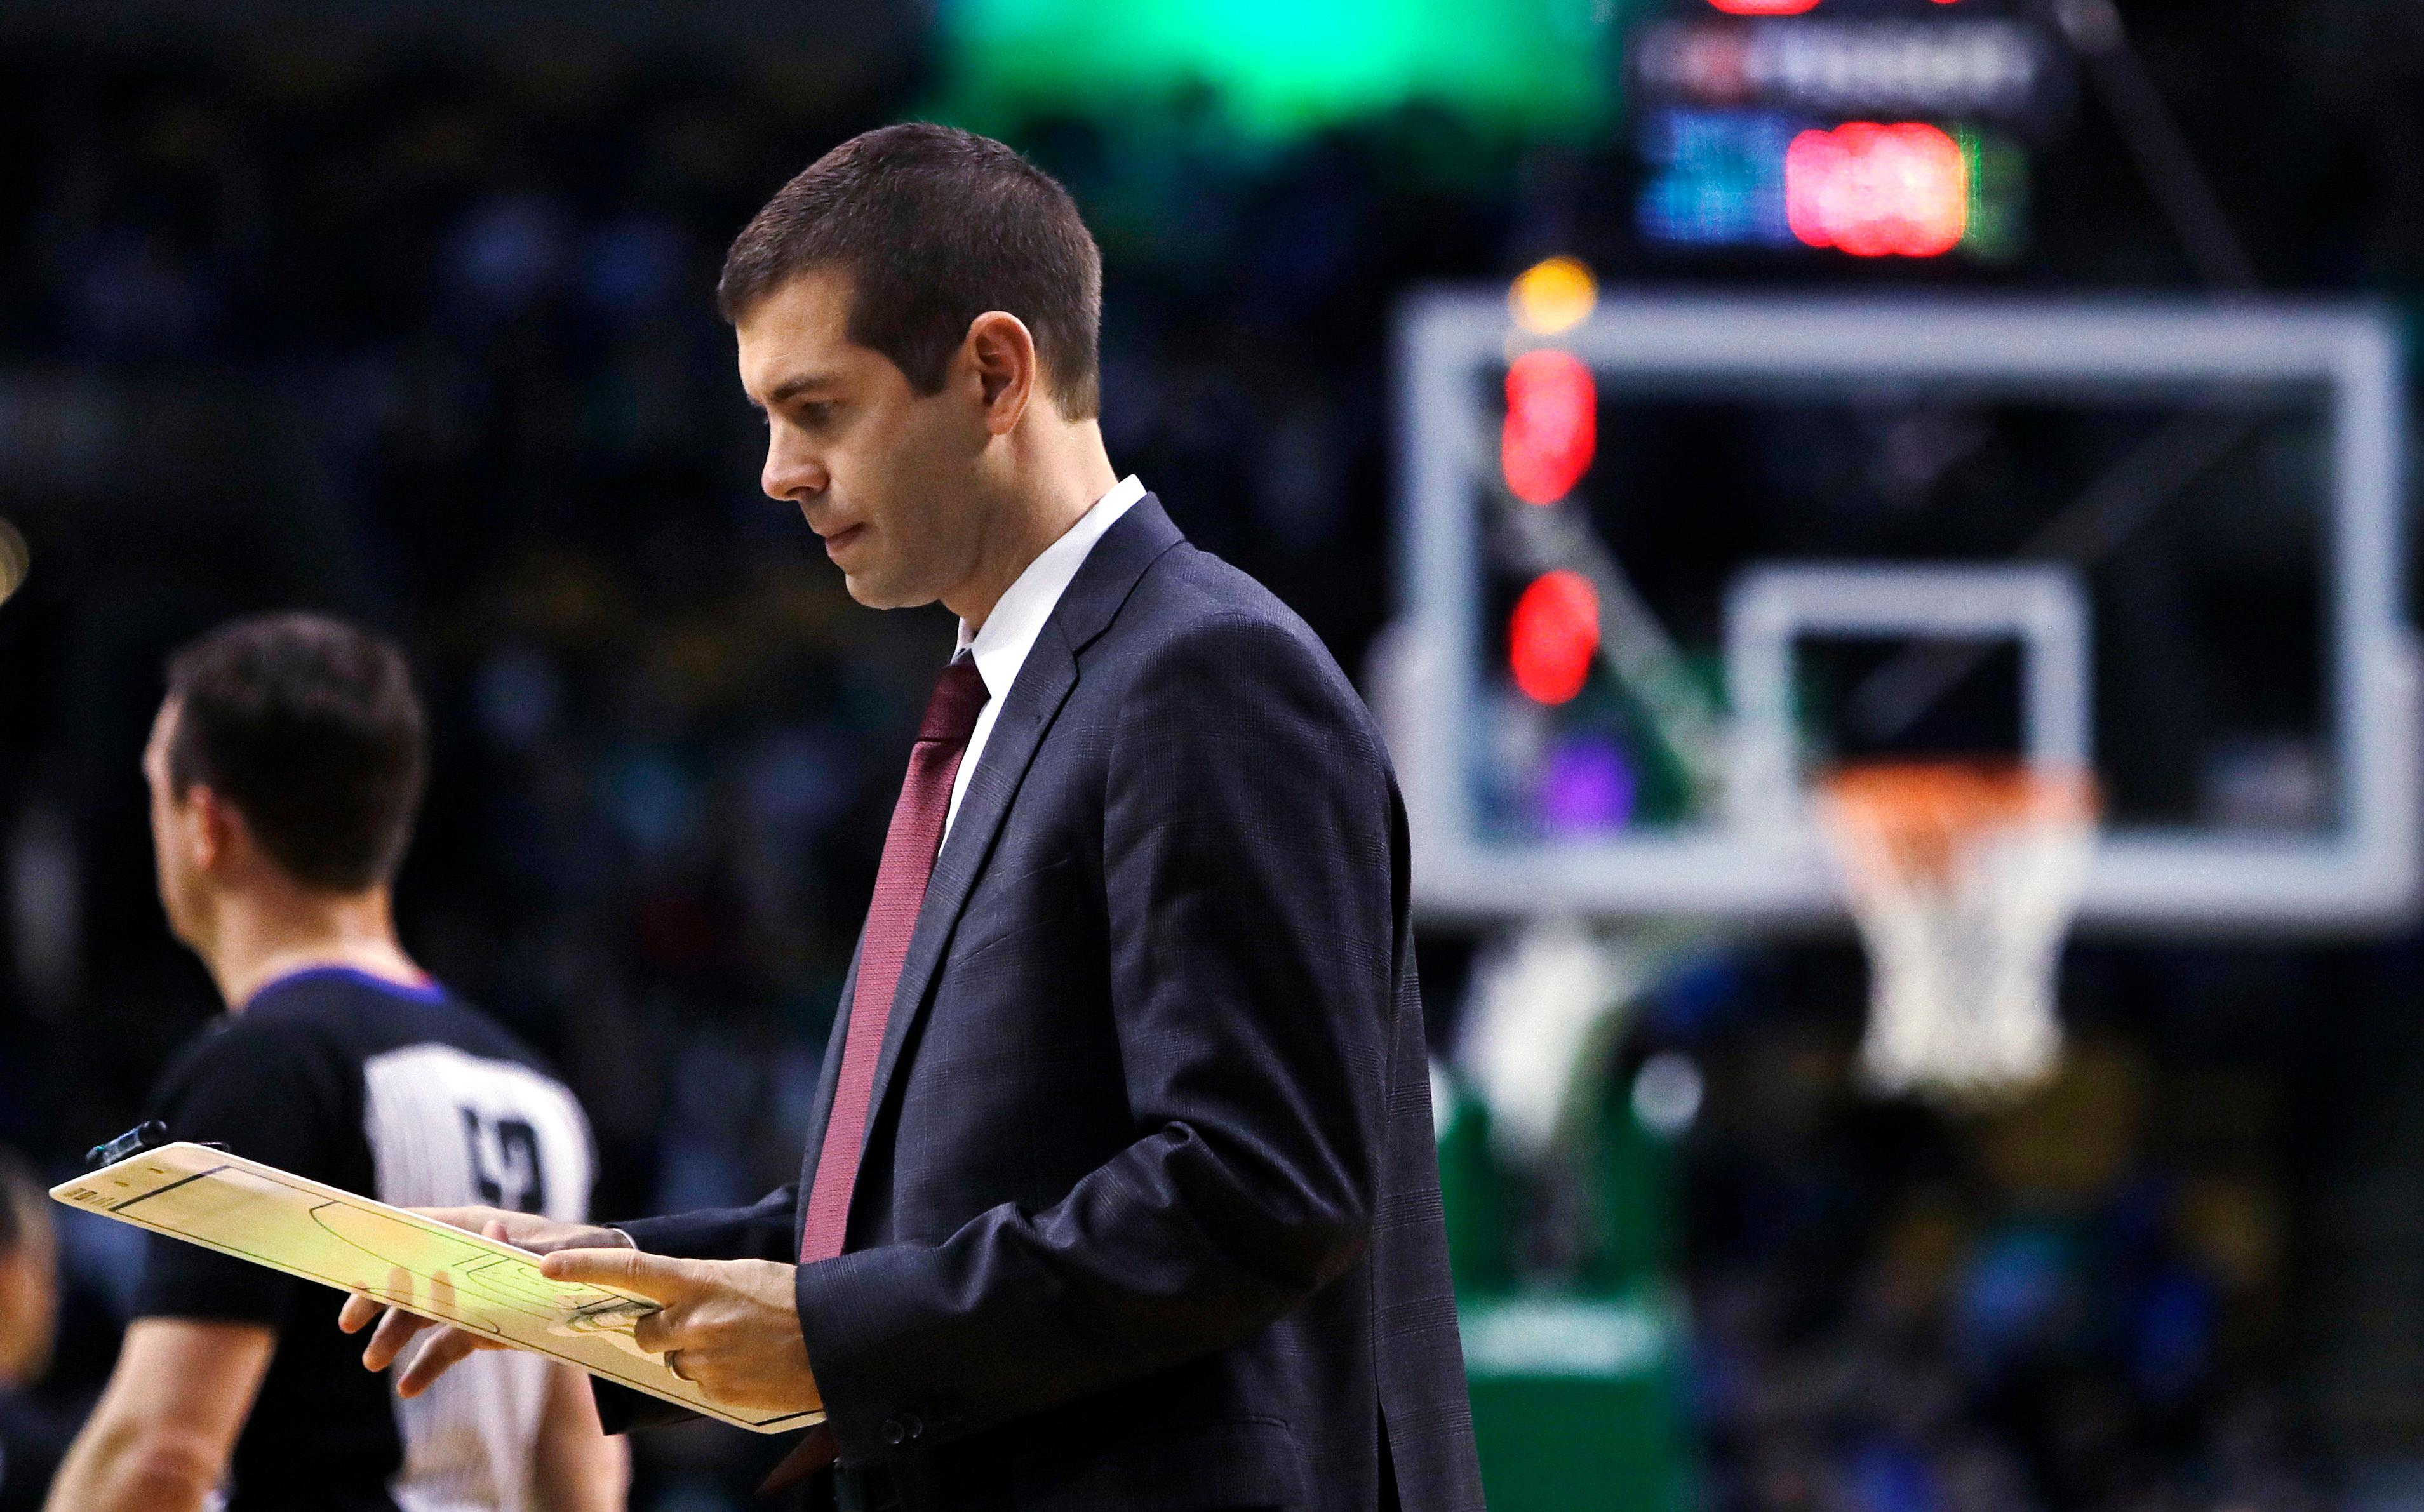 Boston Celtics head coach Brad Stevens crafts a play during a timeout in the first quarter of an NBA basketball game against the Dallas Mavericks in Boston, Wednesday, Dec. 6, 2017. (AP Photo/Charles Krupa)